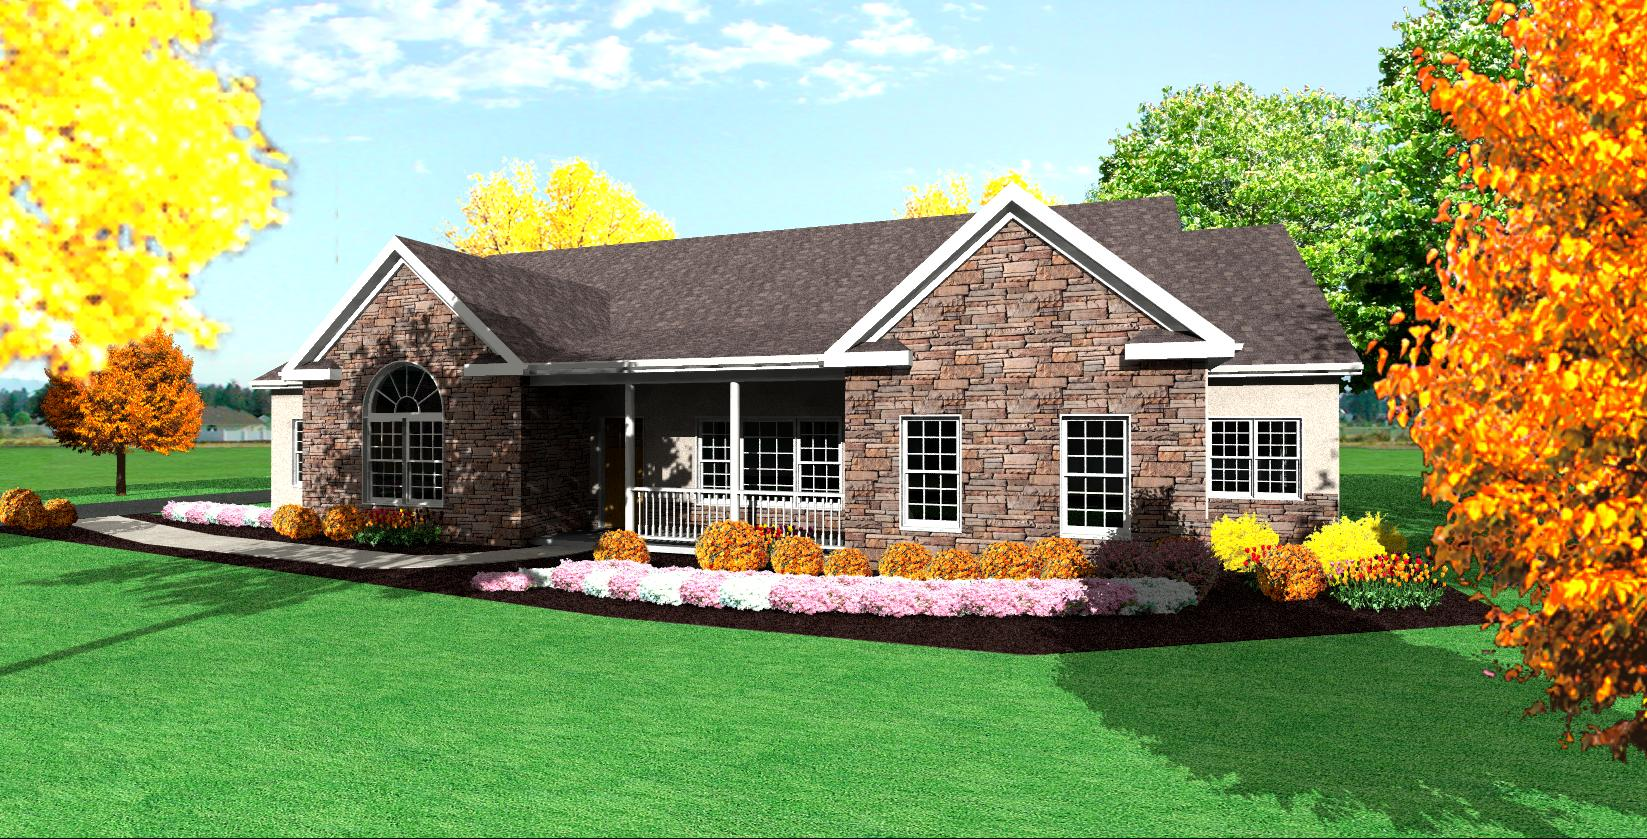 Traditional ranch house plan single level one story ranch for Traditional ranch house